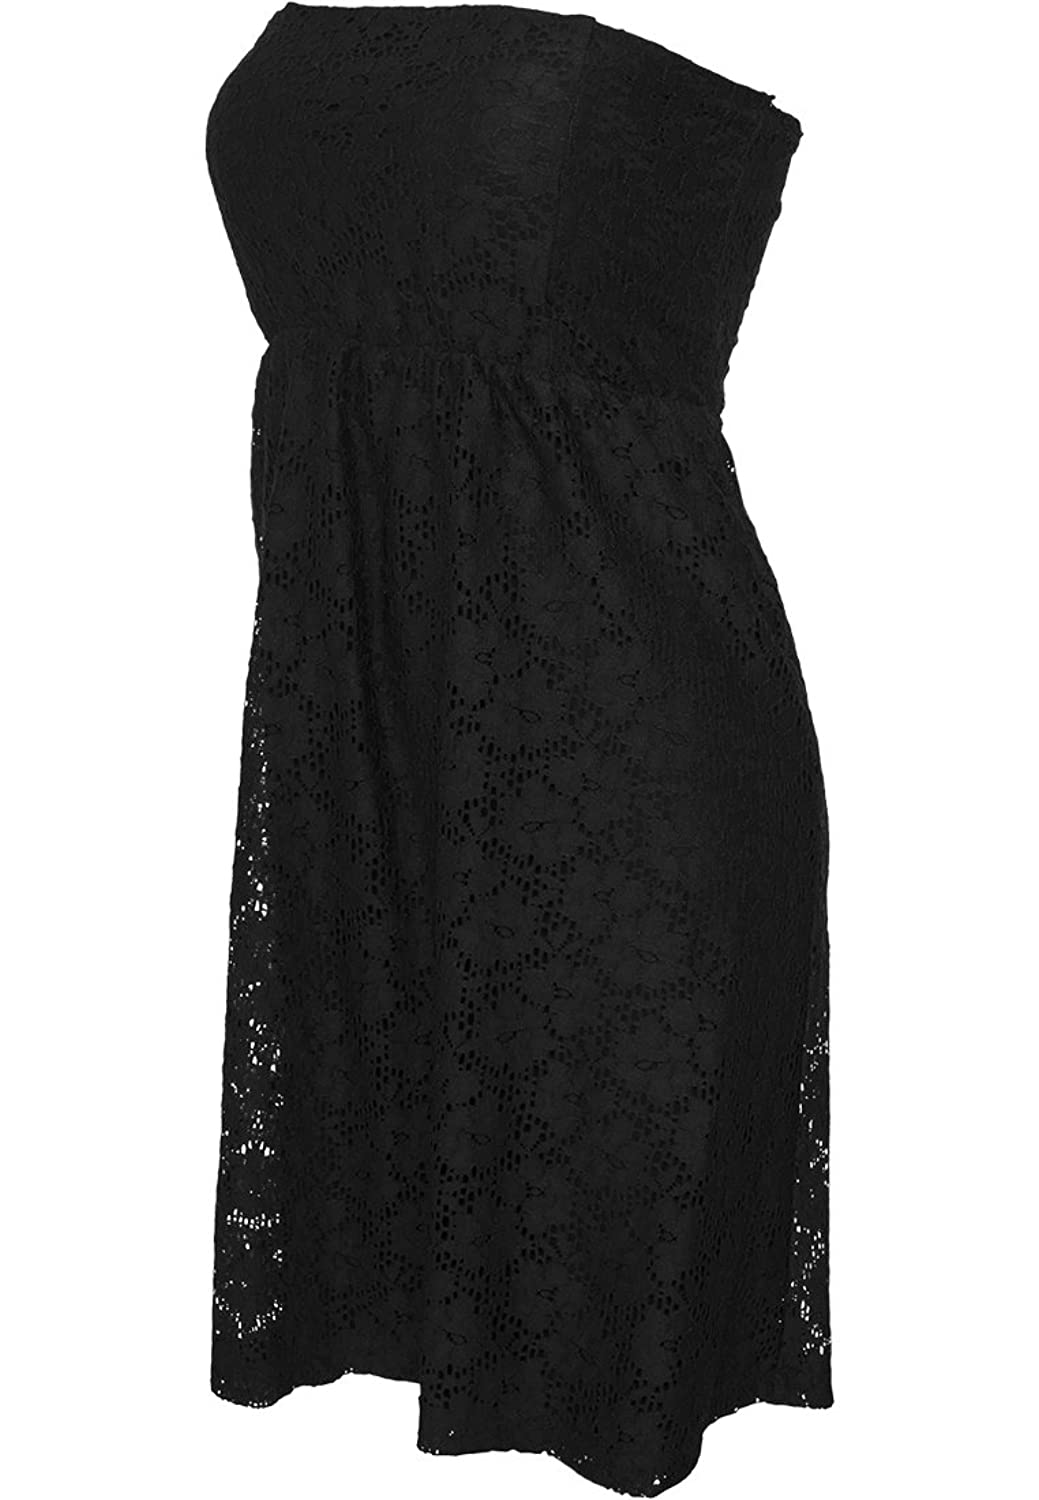 URBAN CLASSICS - Ladies Laces Dress (black)